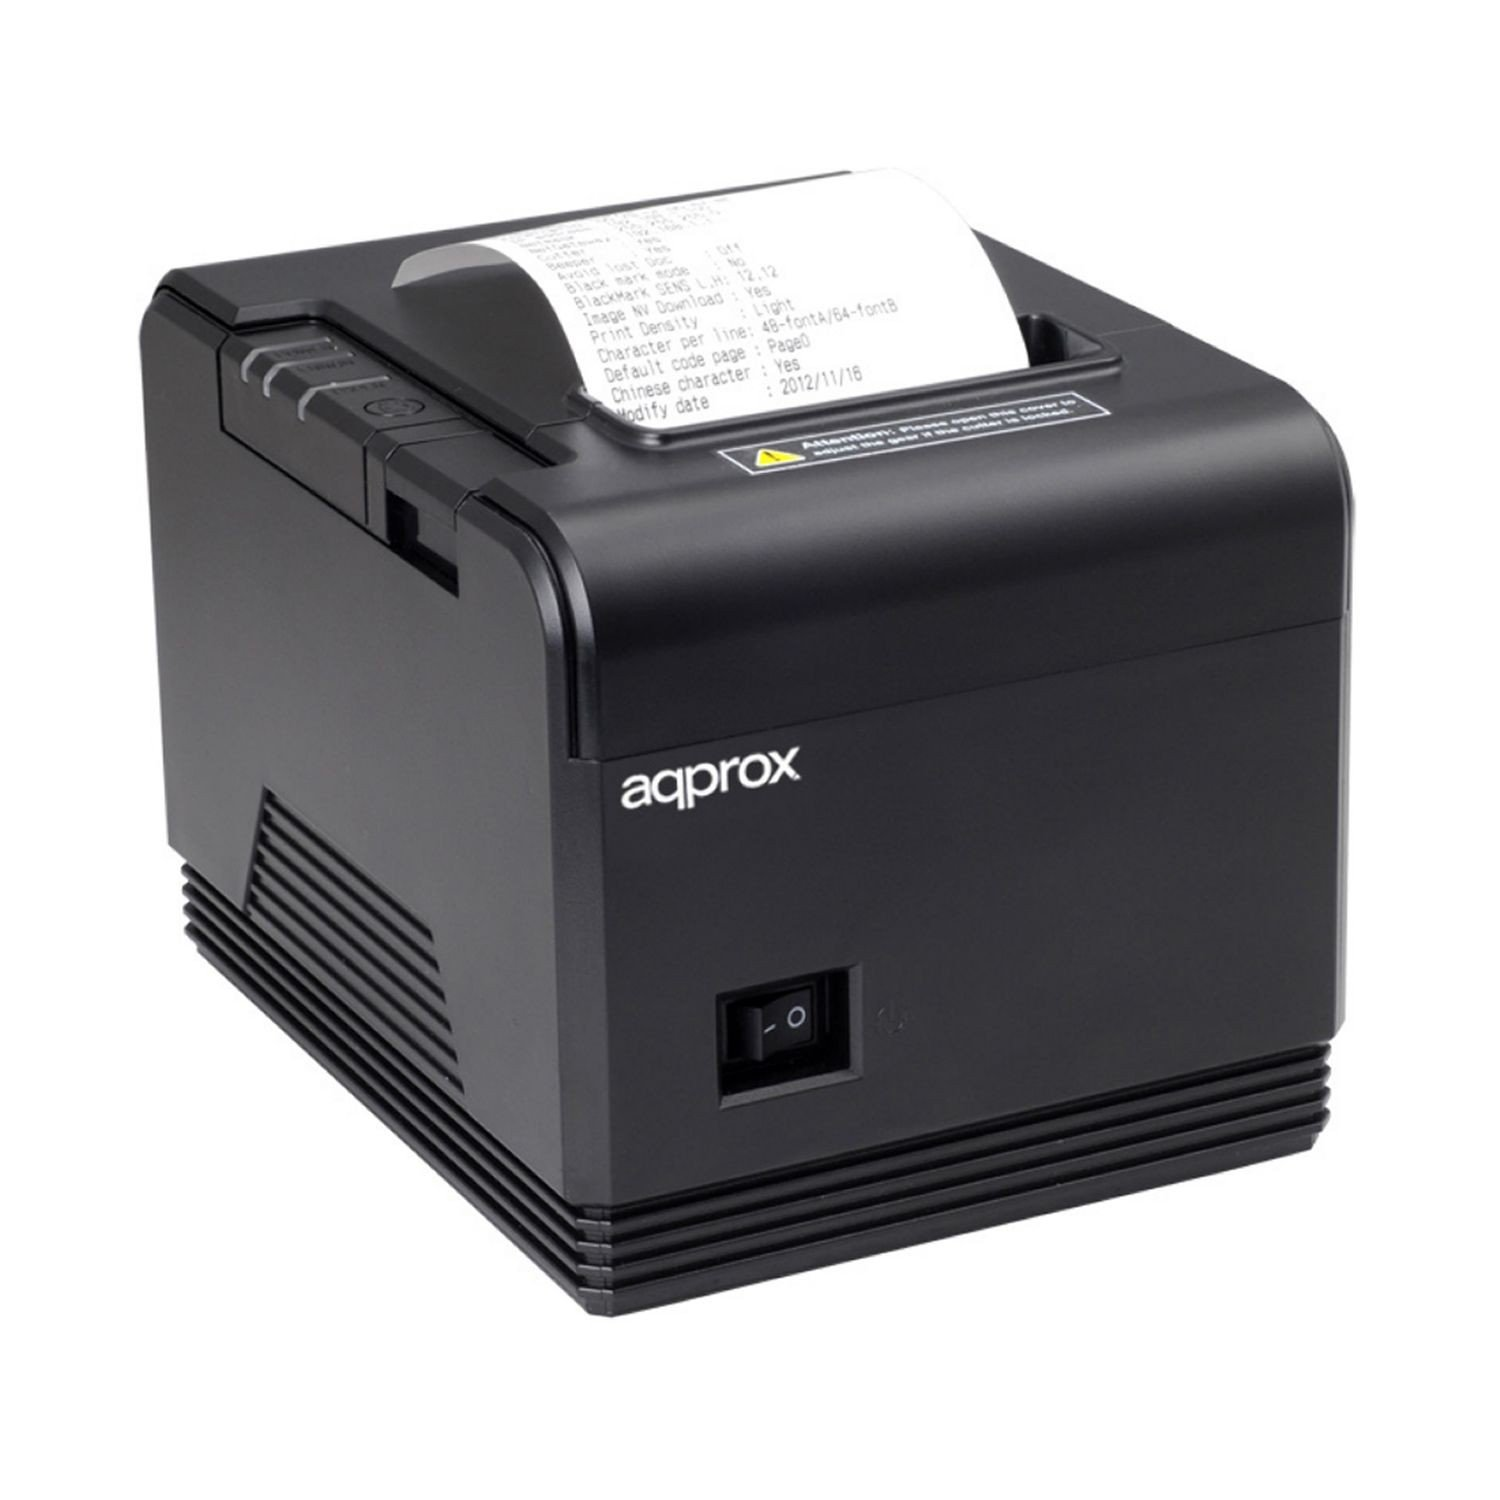 Approx APPPOS80AM3 Thermique directe POS printer 203 x 203DPI Imprimante avec un port infrarouge - Imprimantes Point de Vente (Thermique directe, POS printer, 200 mm/sec, 203 x 203 DPI, Noir, CODABAR (NW-7),Code 39,Code 93,Code-128 Codabar Library,EAN13,EA